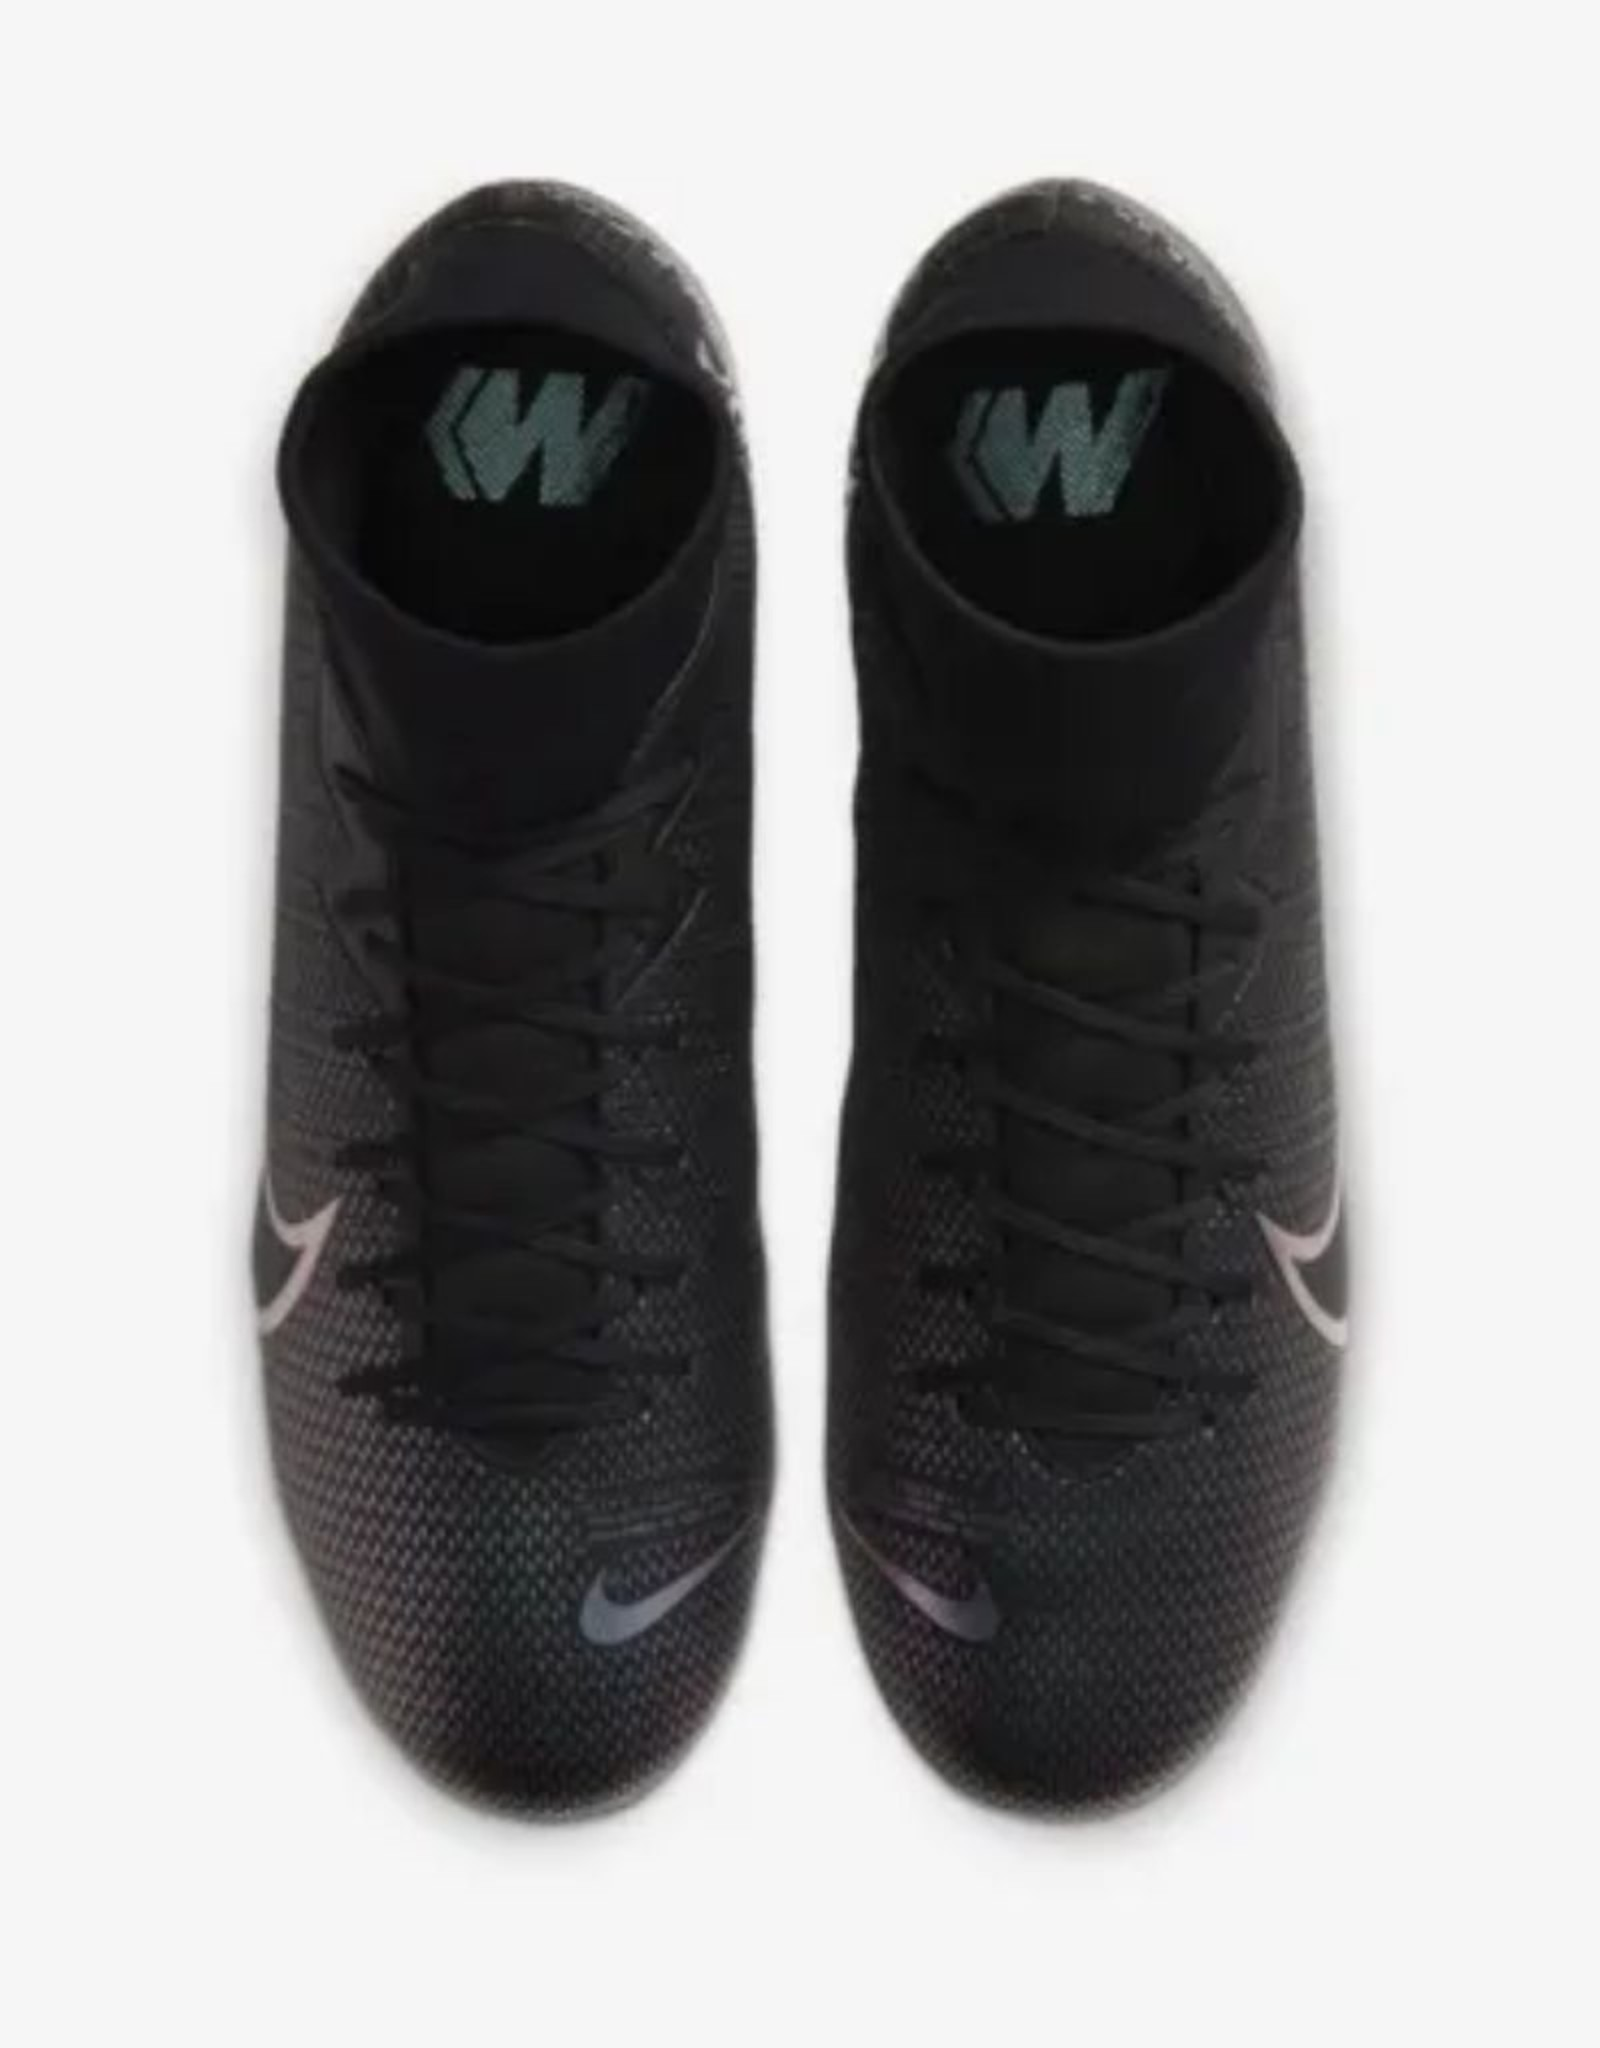 Nike Mercurial Superfly 7 Academy MG Soccer Cleat Black